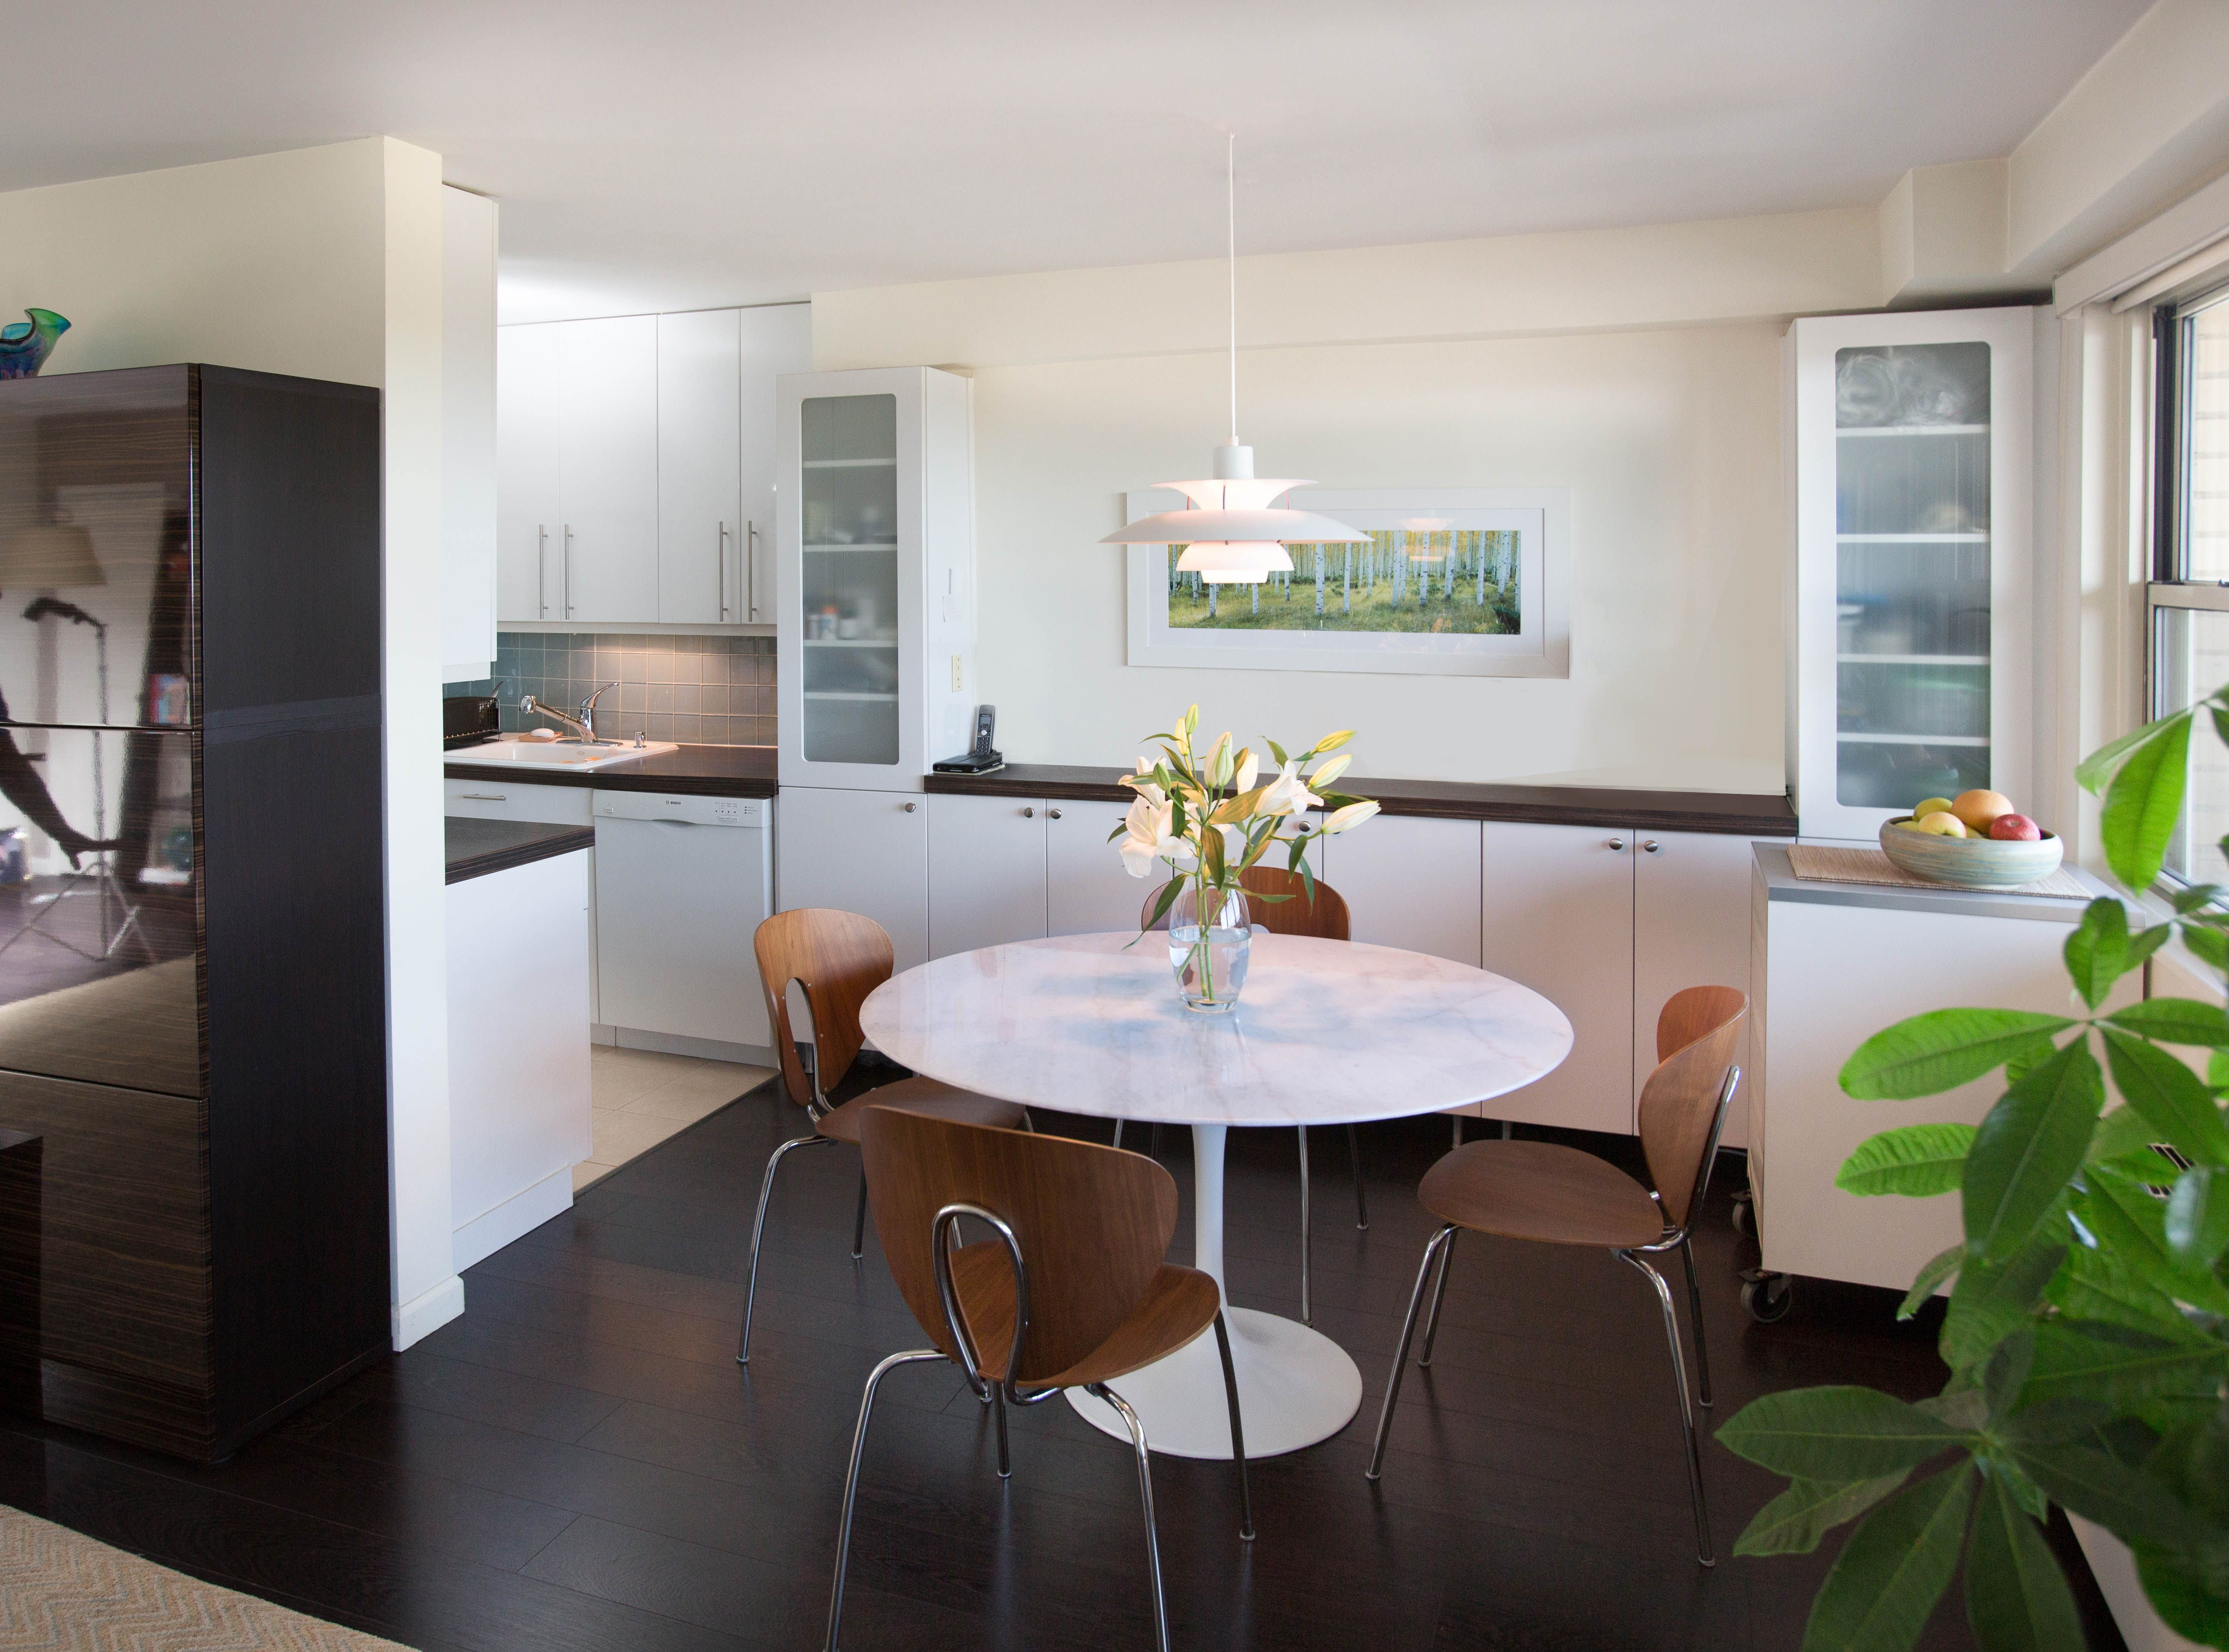 Contemporary Dining Room Cabinets Amazing Modern Dark Wood Floors And Light Walls Provide A Clean Backdrop Inspiration